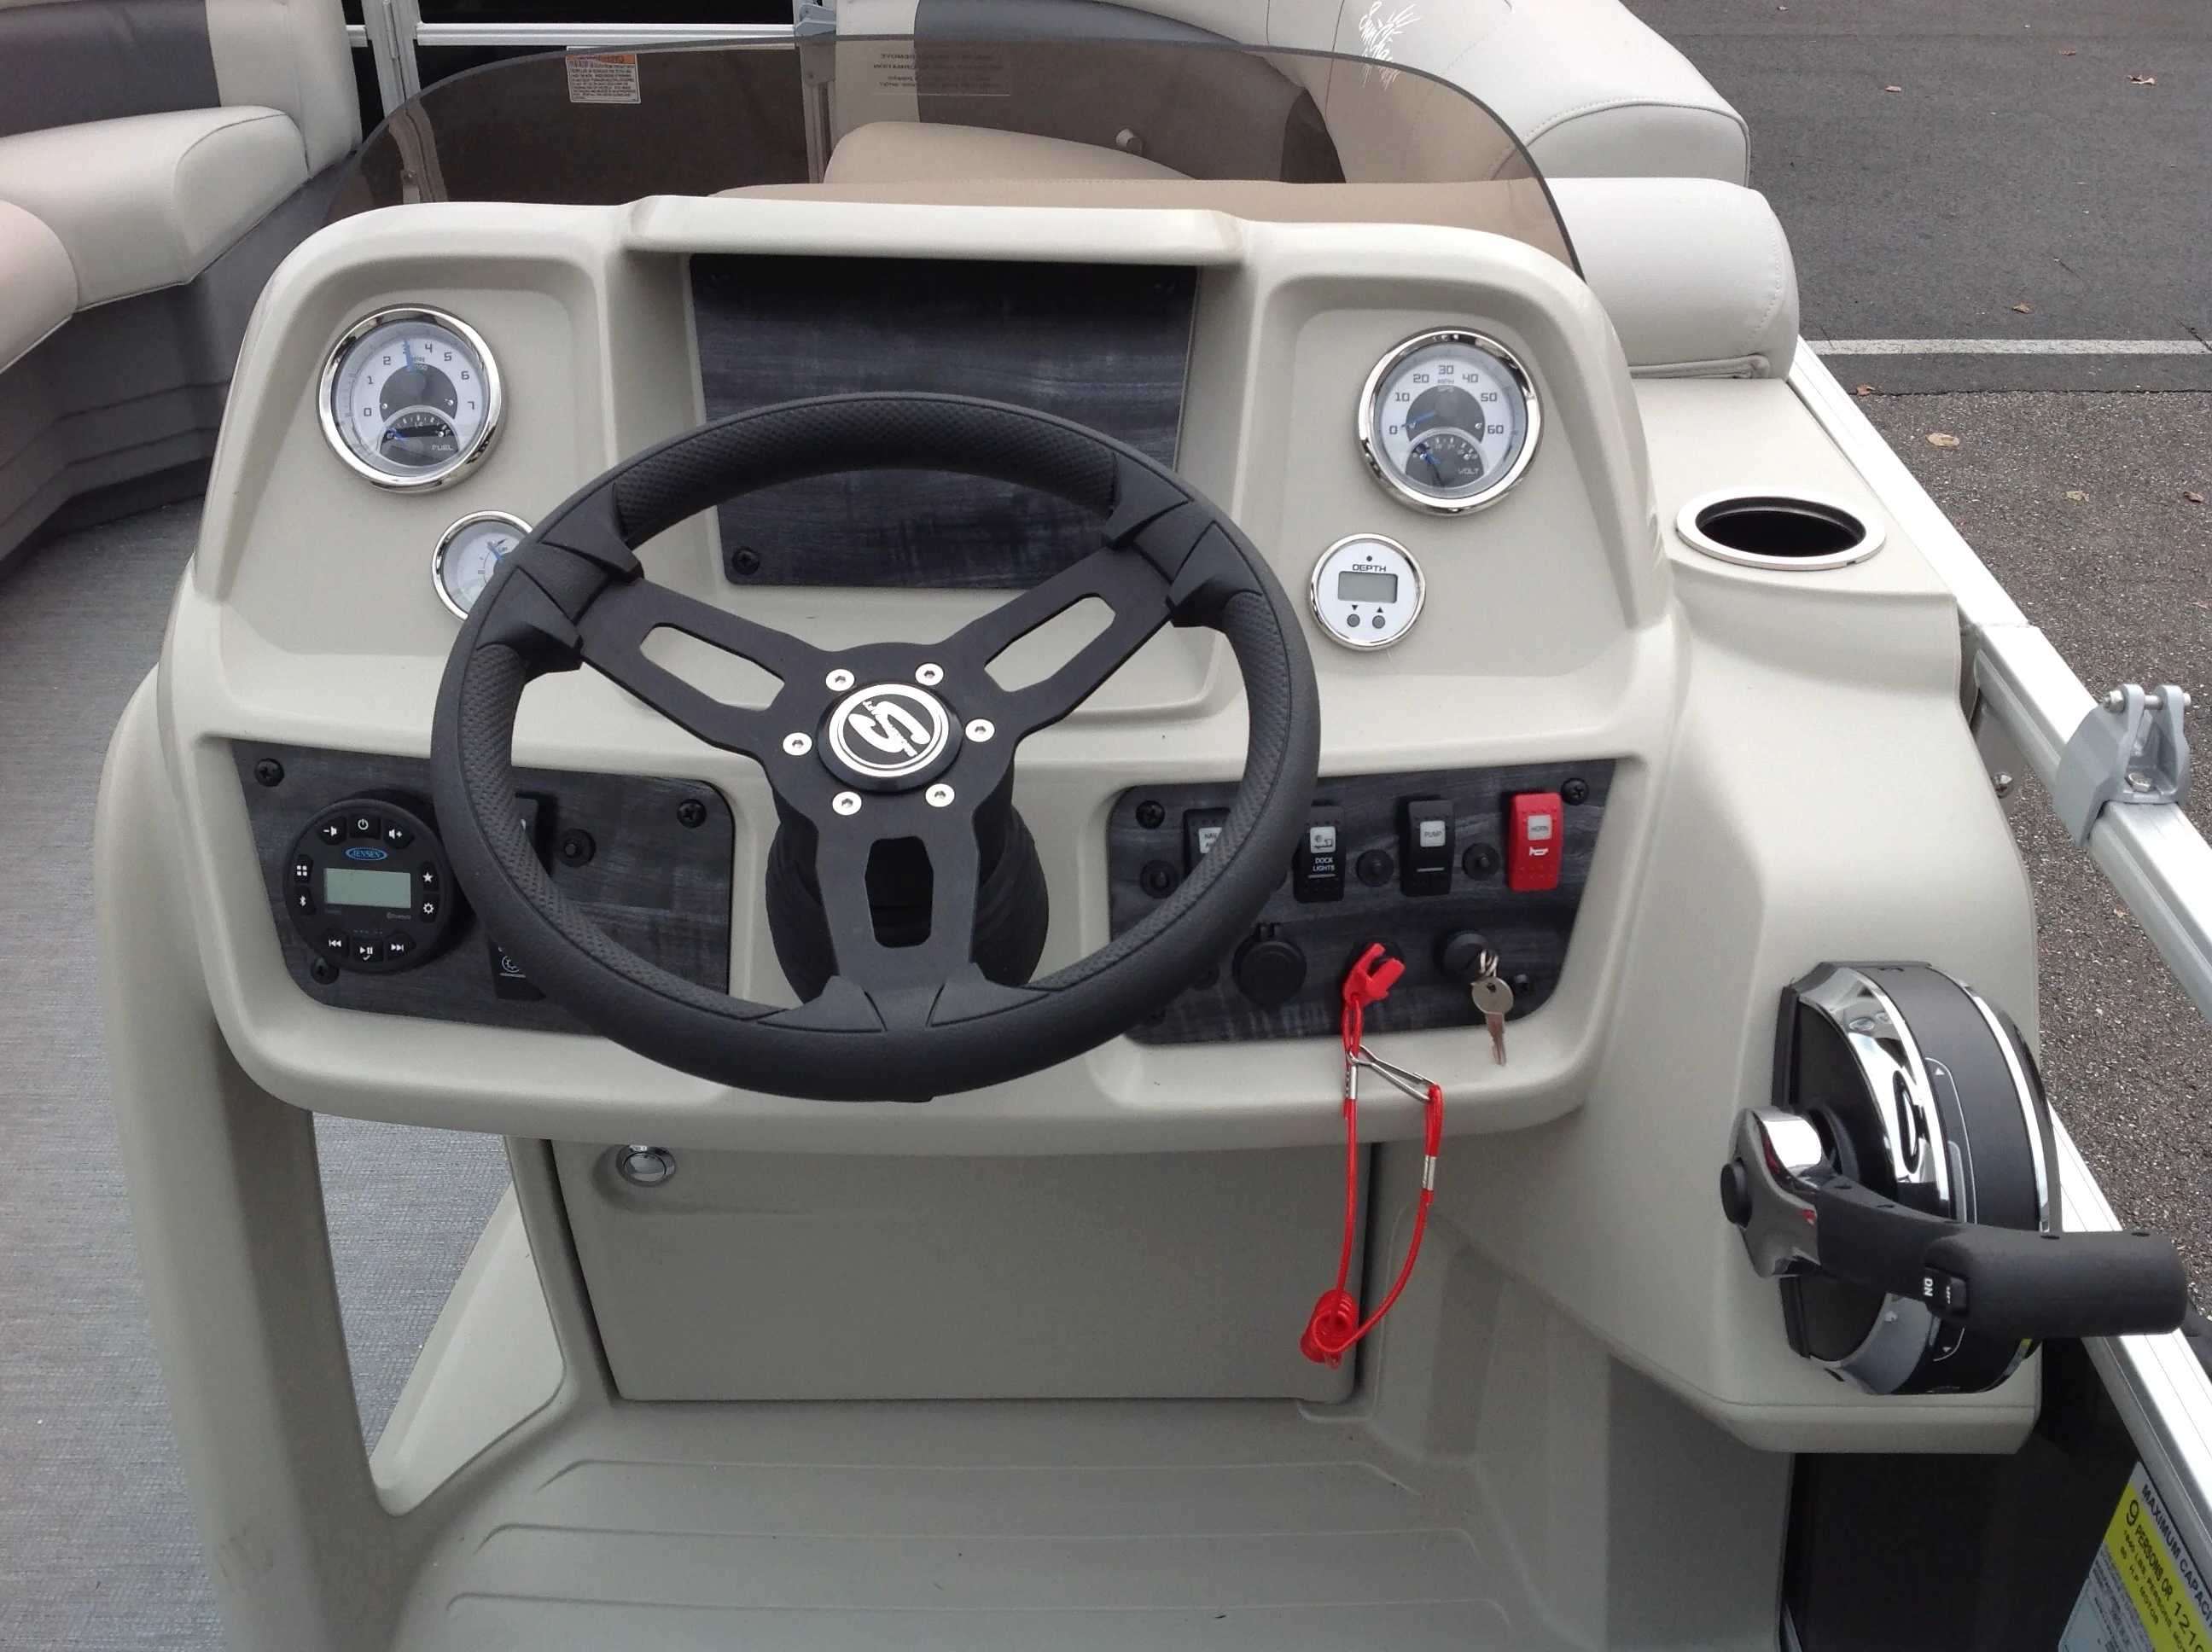 2021 SunChaser boat for sale, model of the boat is Sunchaser & Image # 7 of 10